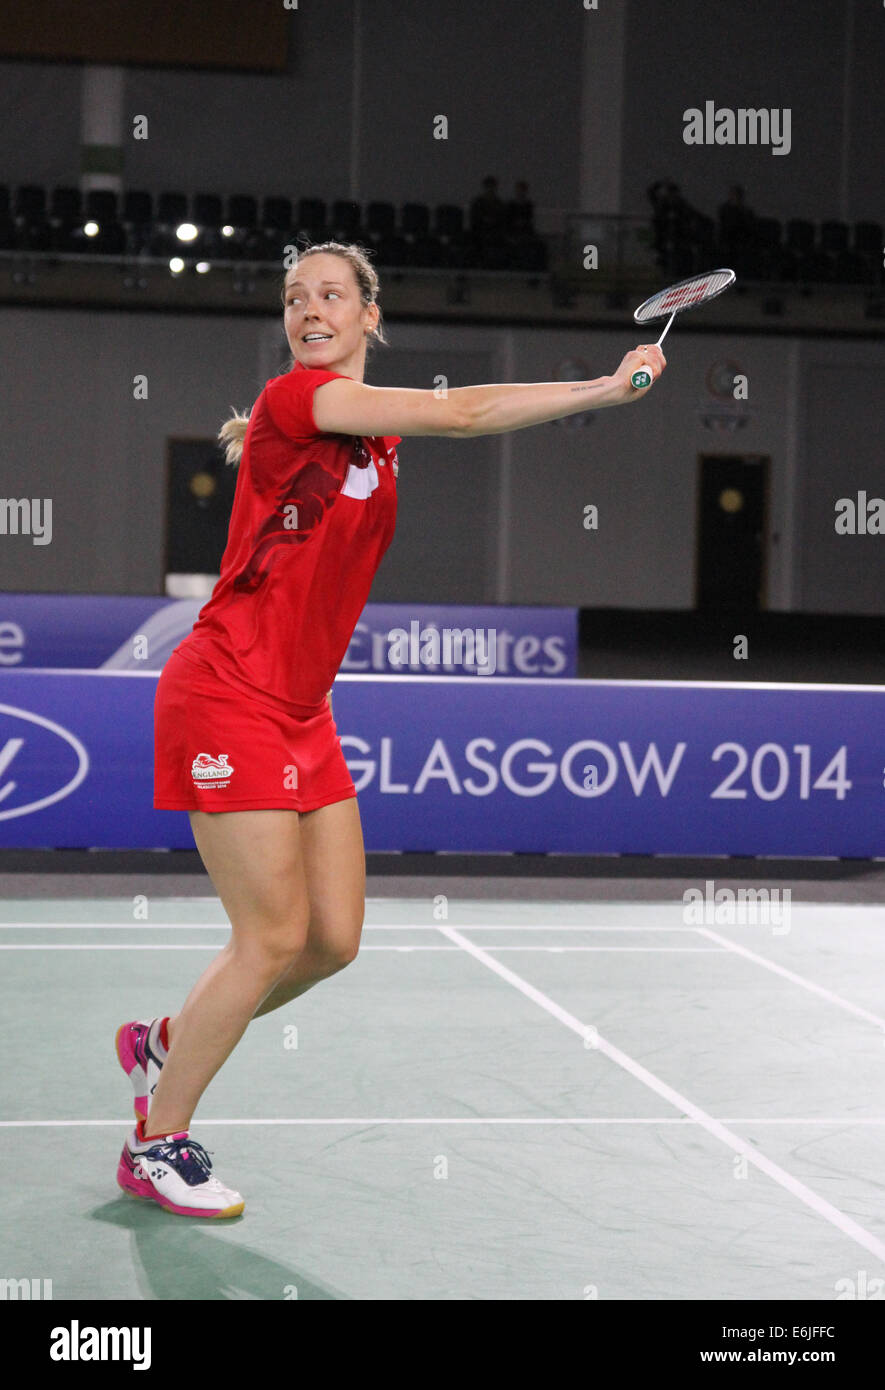 Gabrielle ADCOCK of England v Malaysia in the semi finals of the